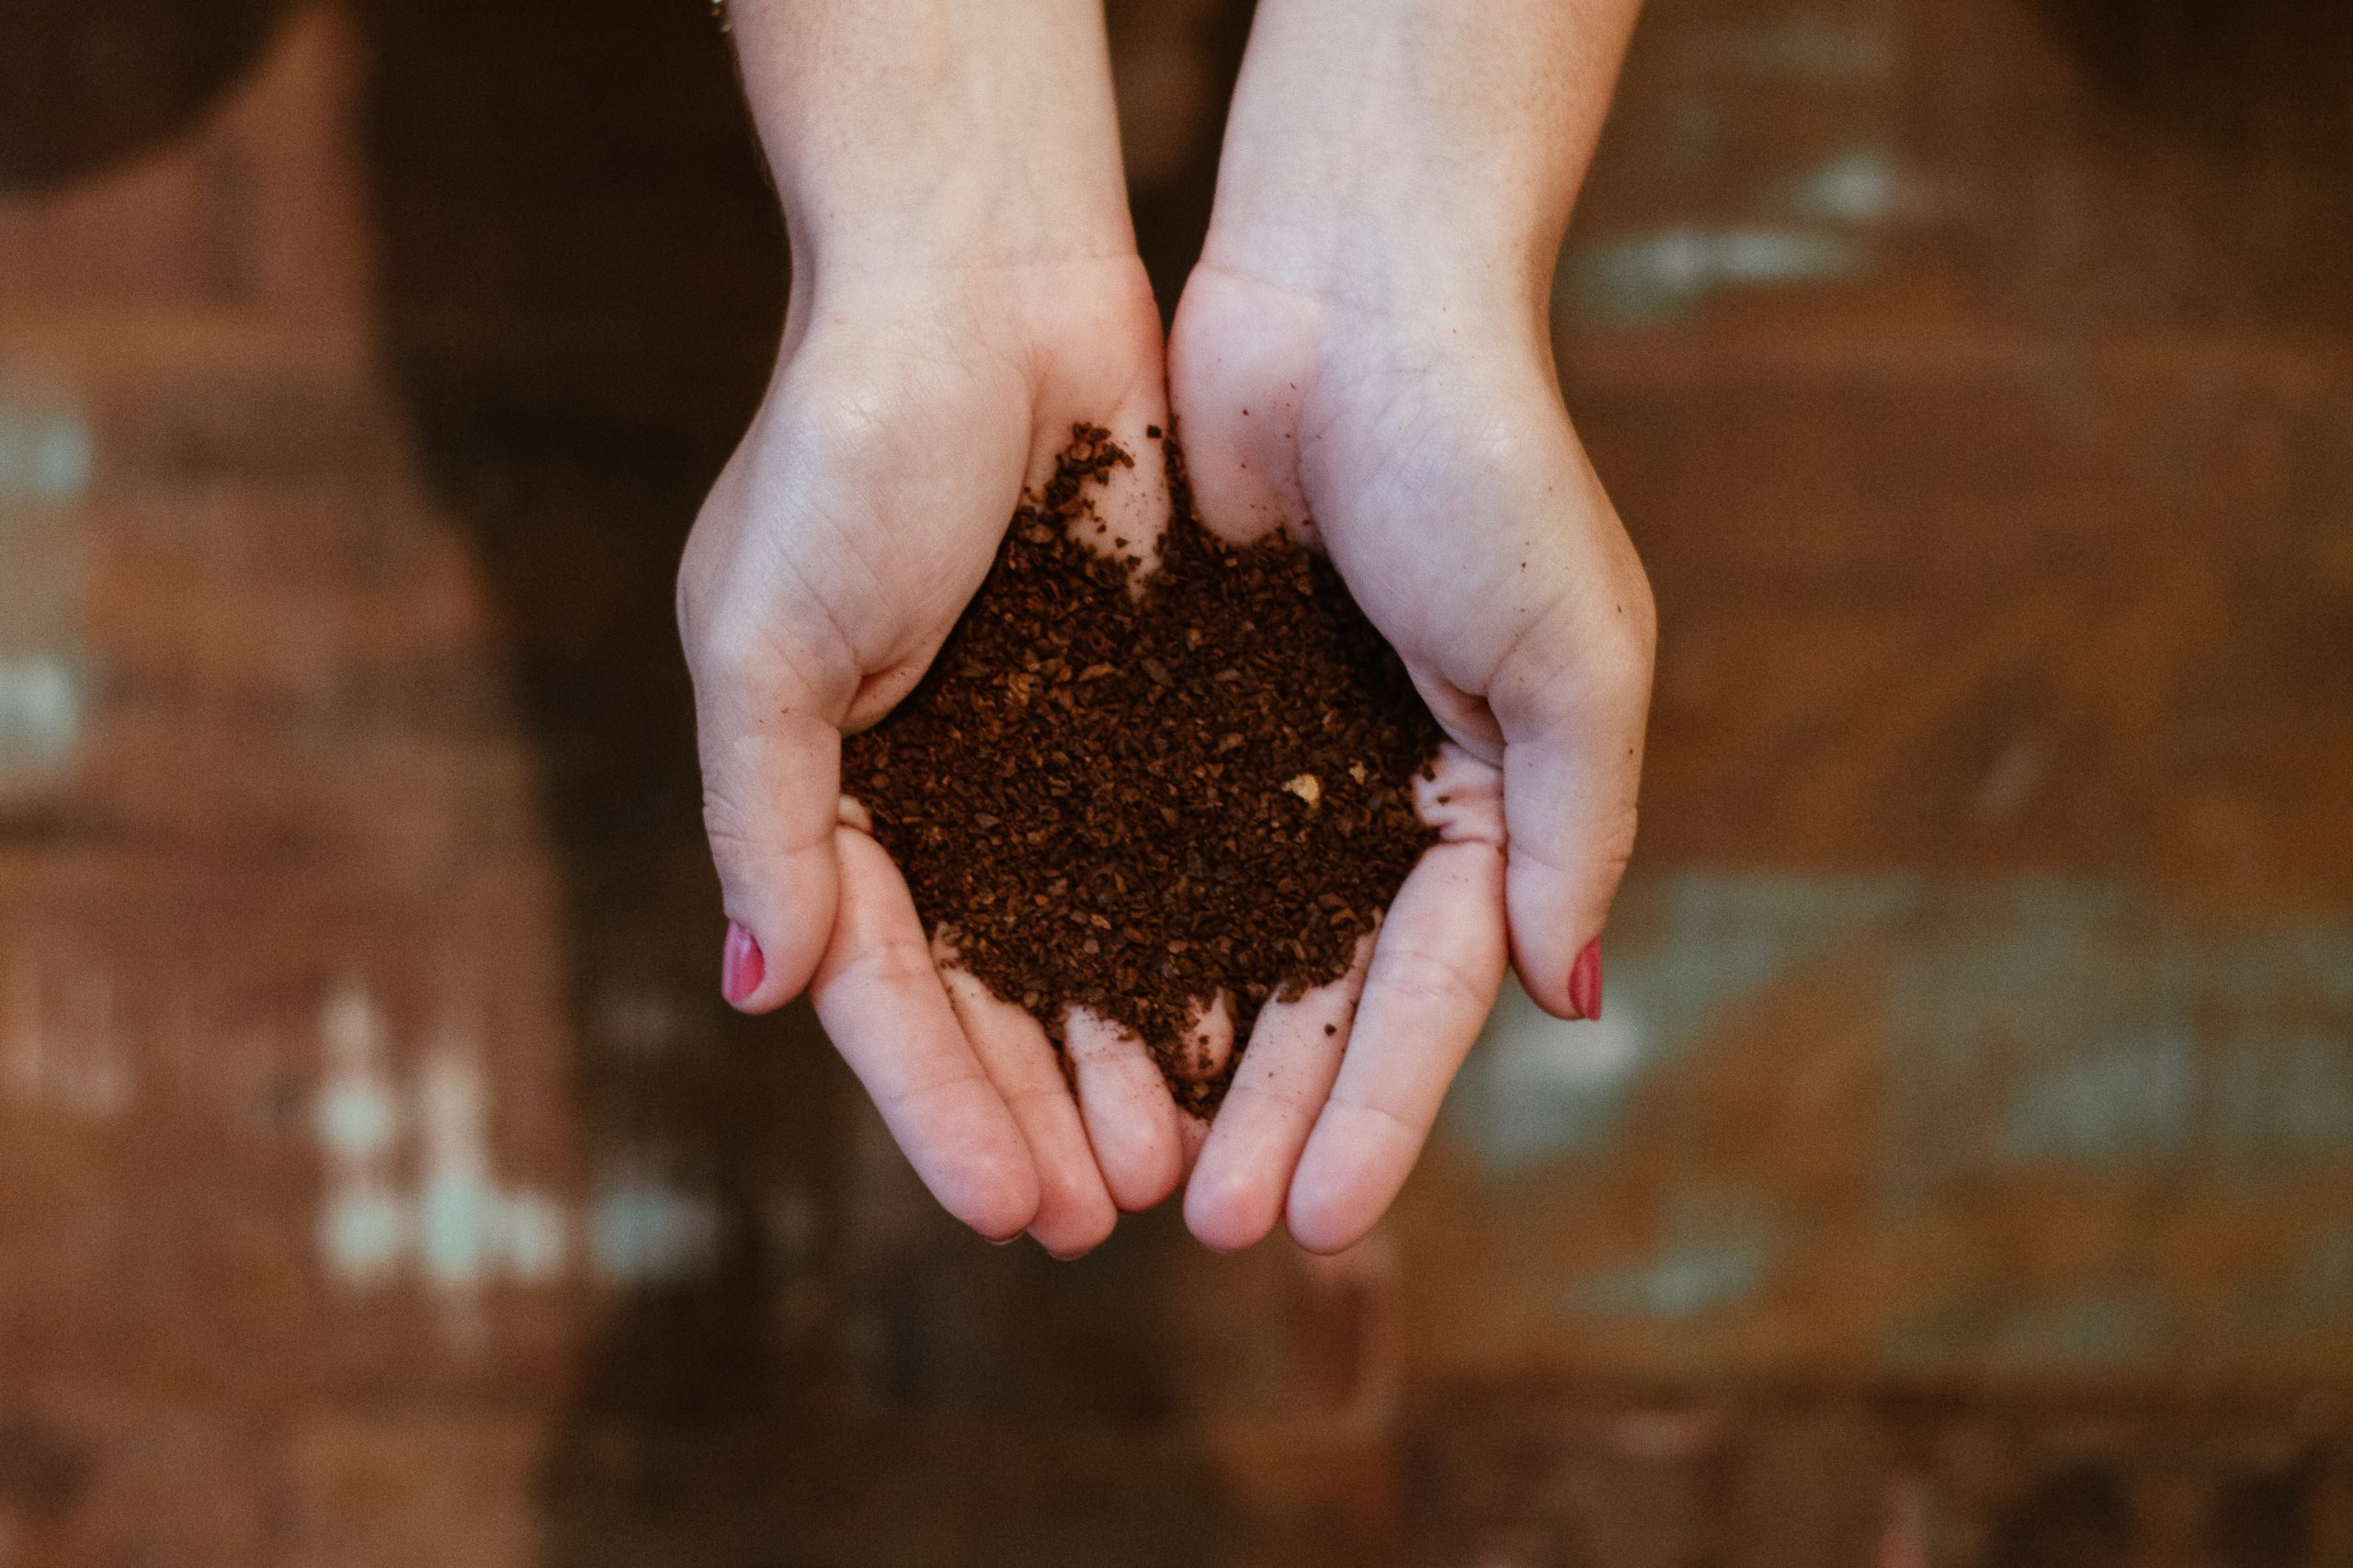 sample of compost being held in hands